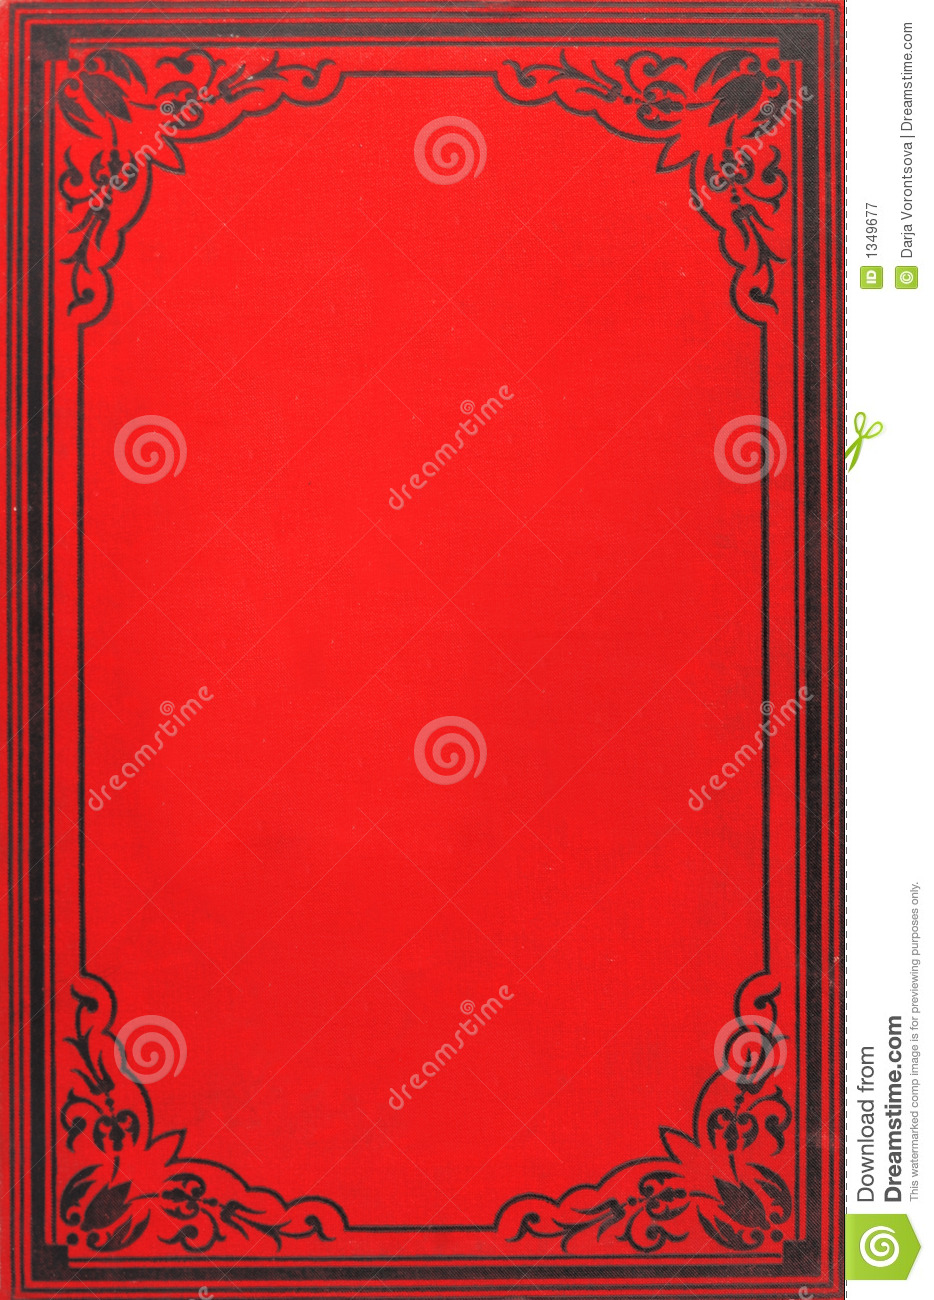 Old book cover stock image. Image of library, page, ancient - 1349677